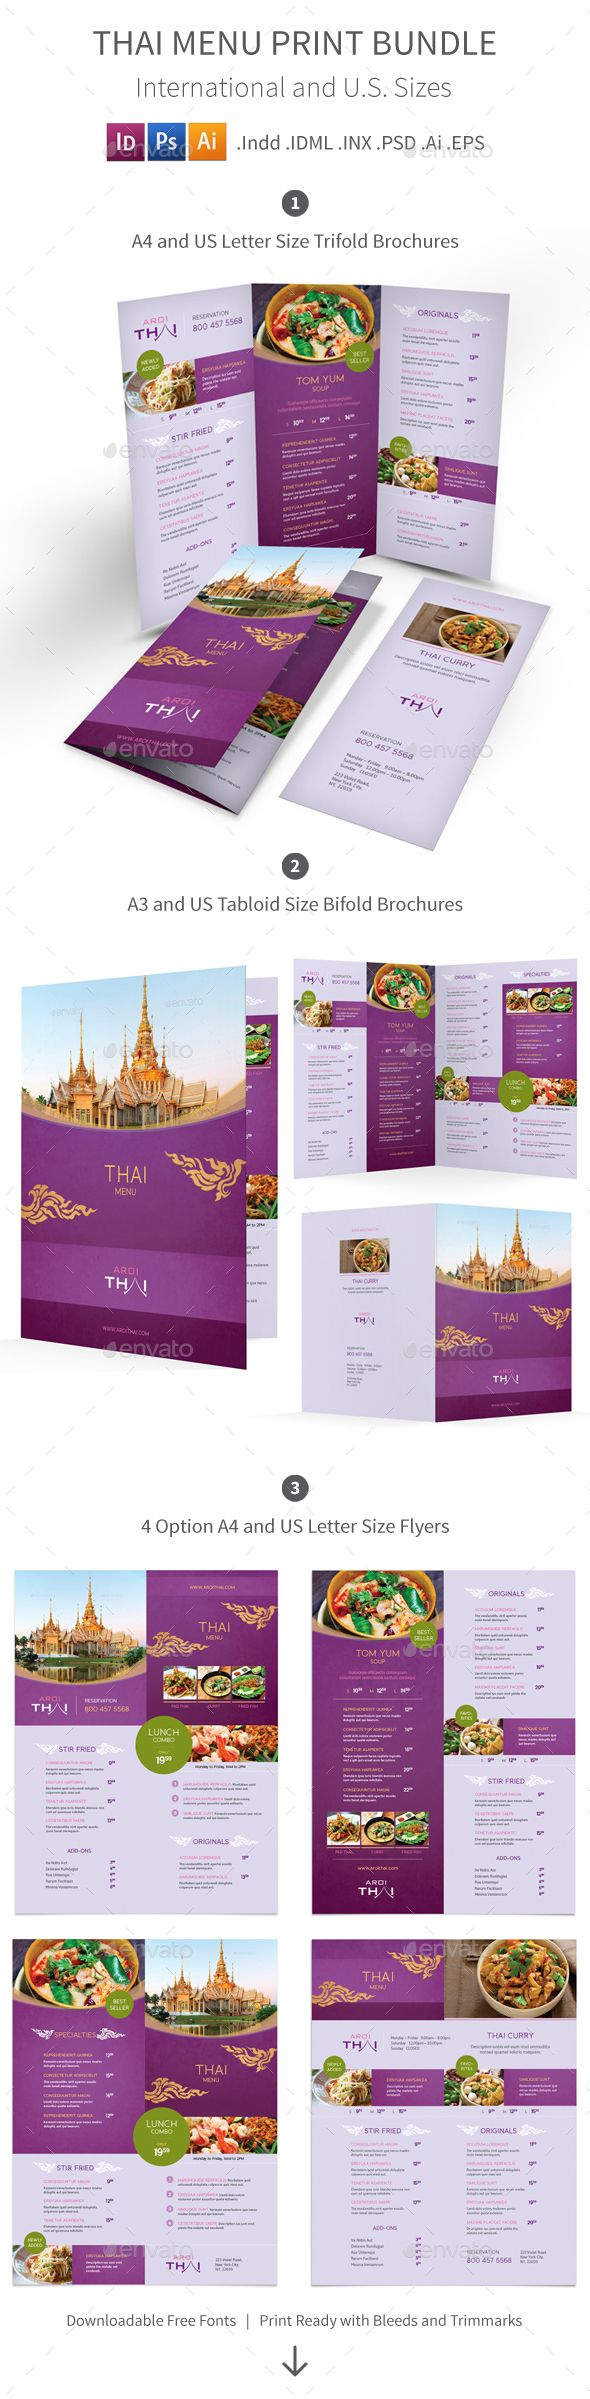 Thai Restaurant Menu Print Bundle Templates PSD, Vector EPS, InDesign INDD, AI Illustrator. Download here: http://graphicriver.net/item/thai-restaurant-menu-print-bundle-2/16460209?ref=ksioks